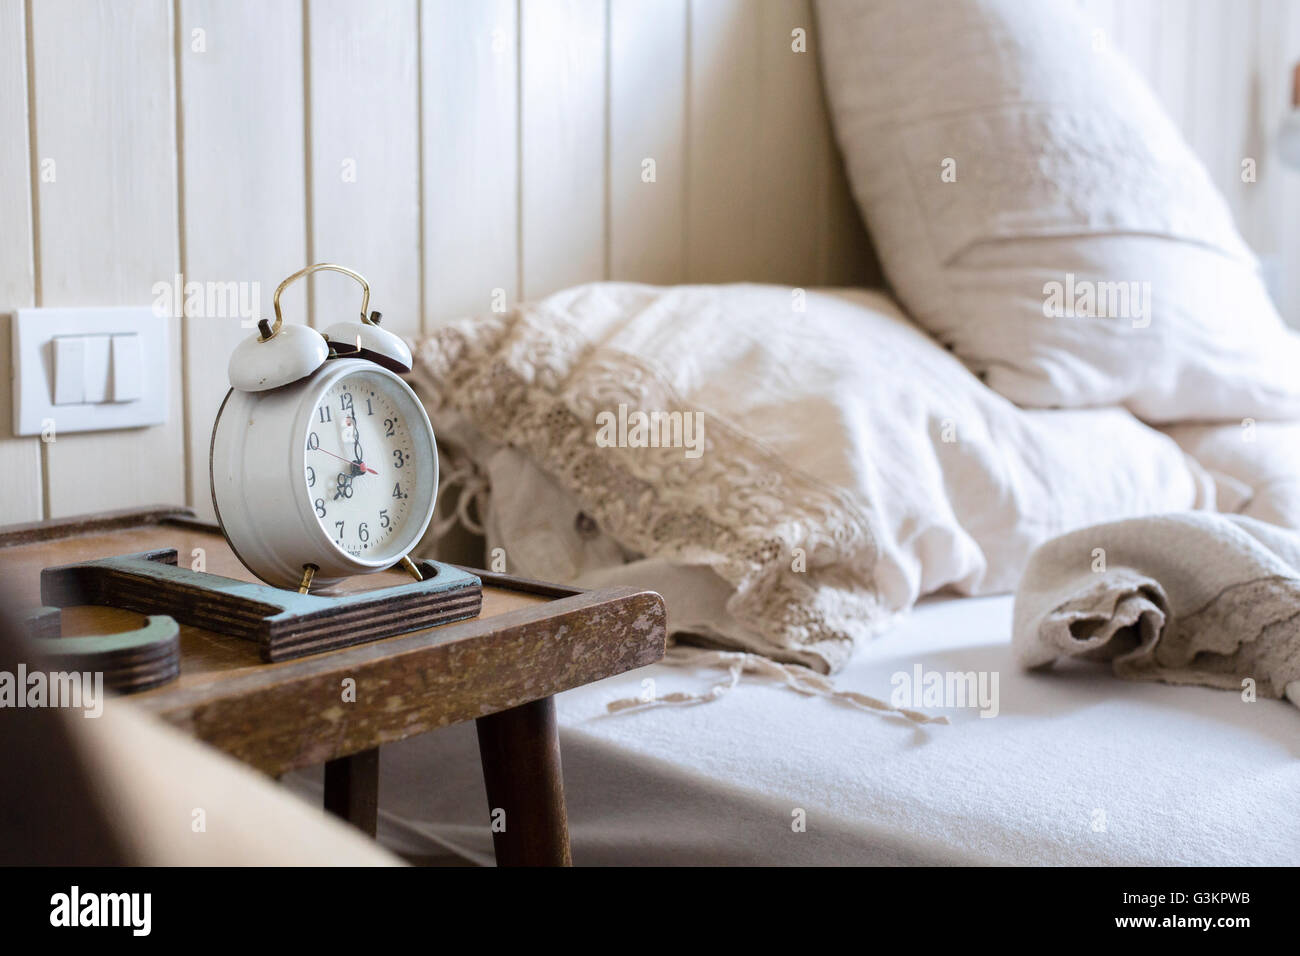 unmade bed alarm clock on bedside table stock image - Bedroom Clock